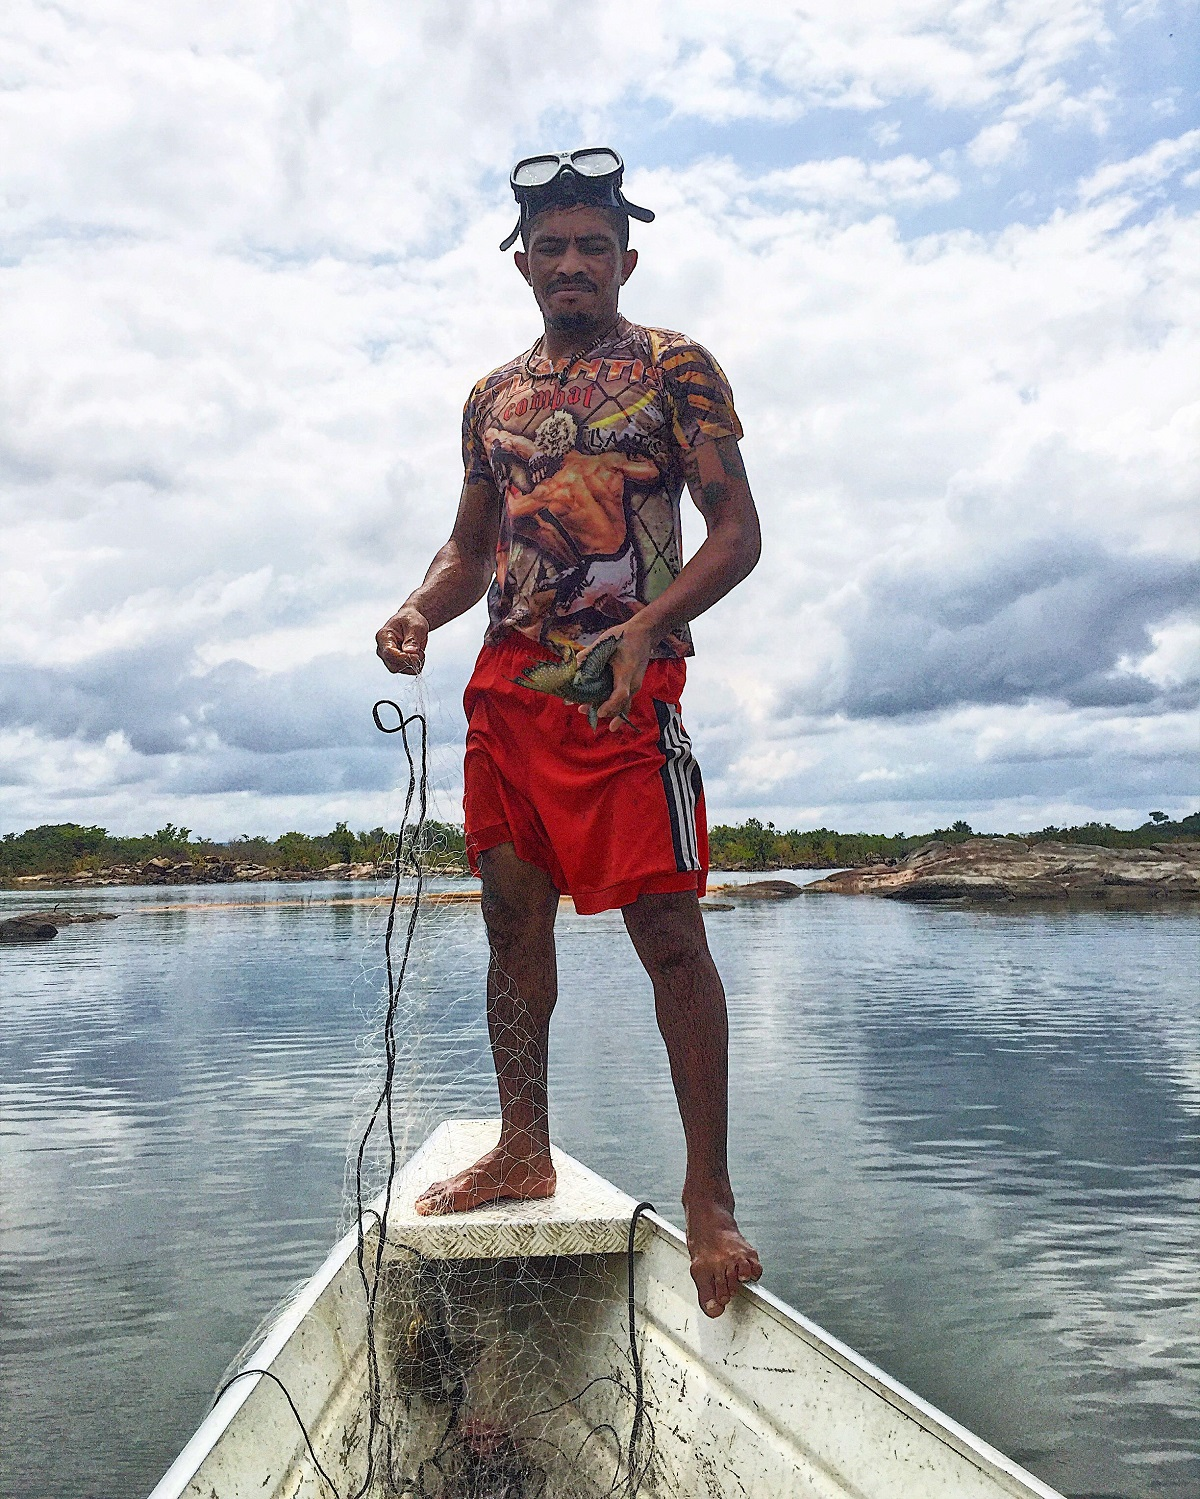 Caboco holds an Acari fish on Sunday fishing trip. Photo by Maximo Anderson for Mongabay.